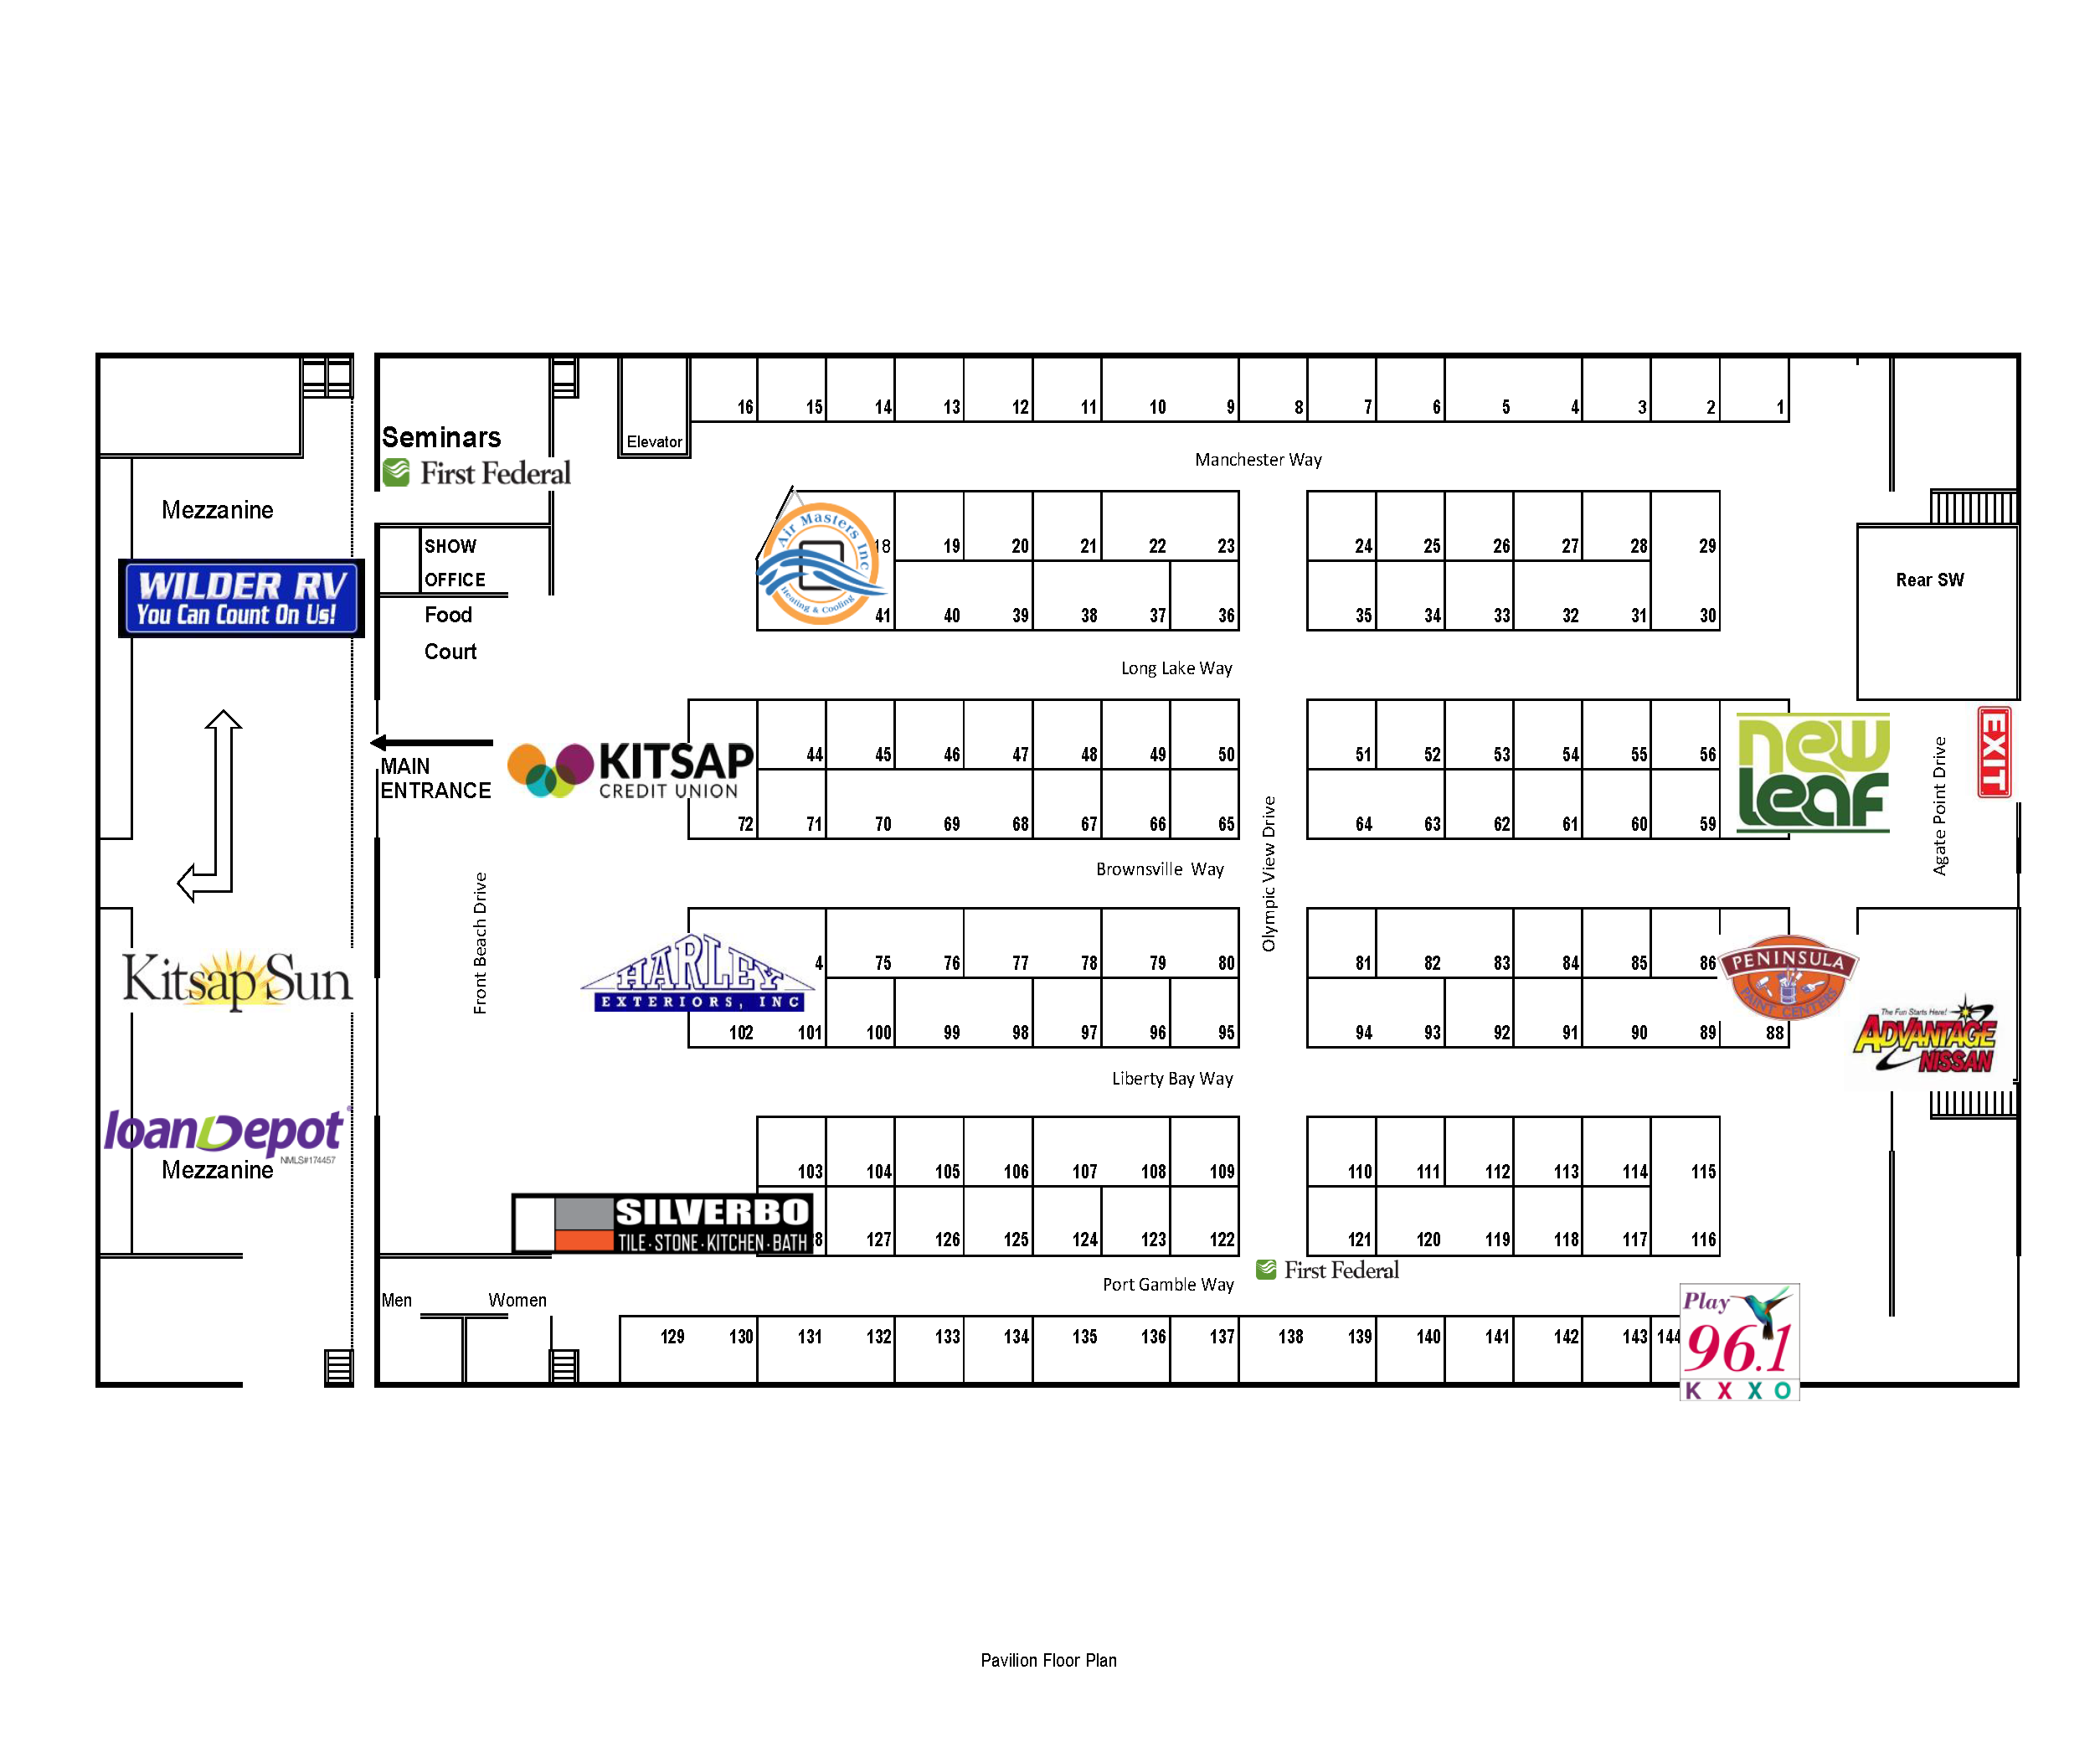 Floor Plan - Pavilion Spring 2019 Expo Guide